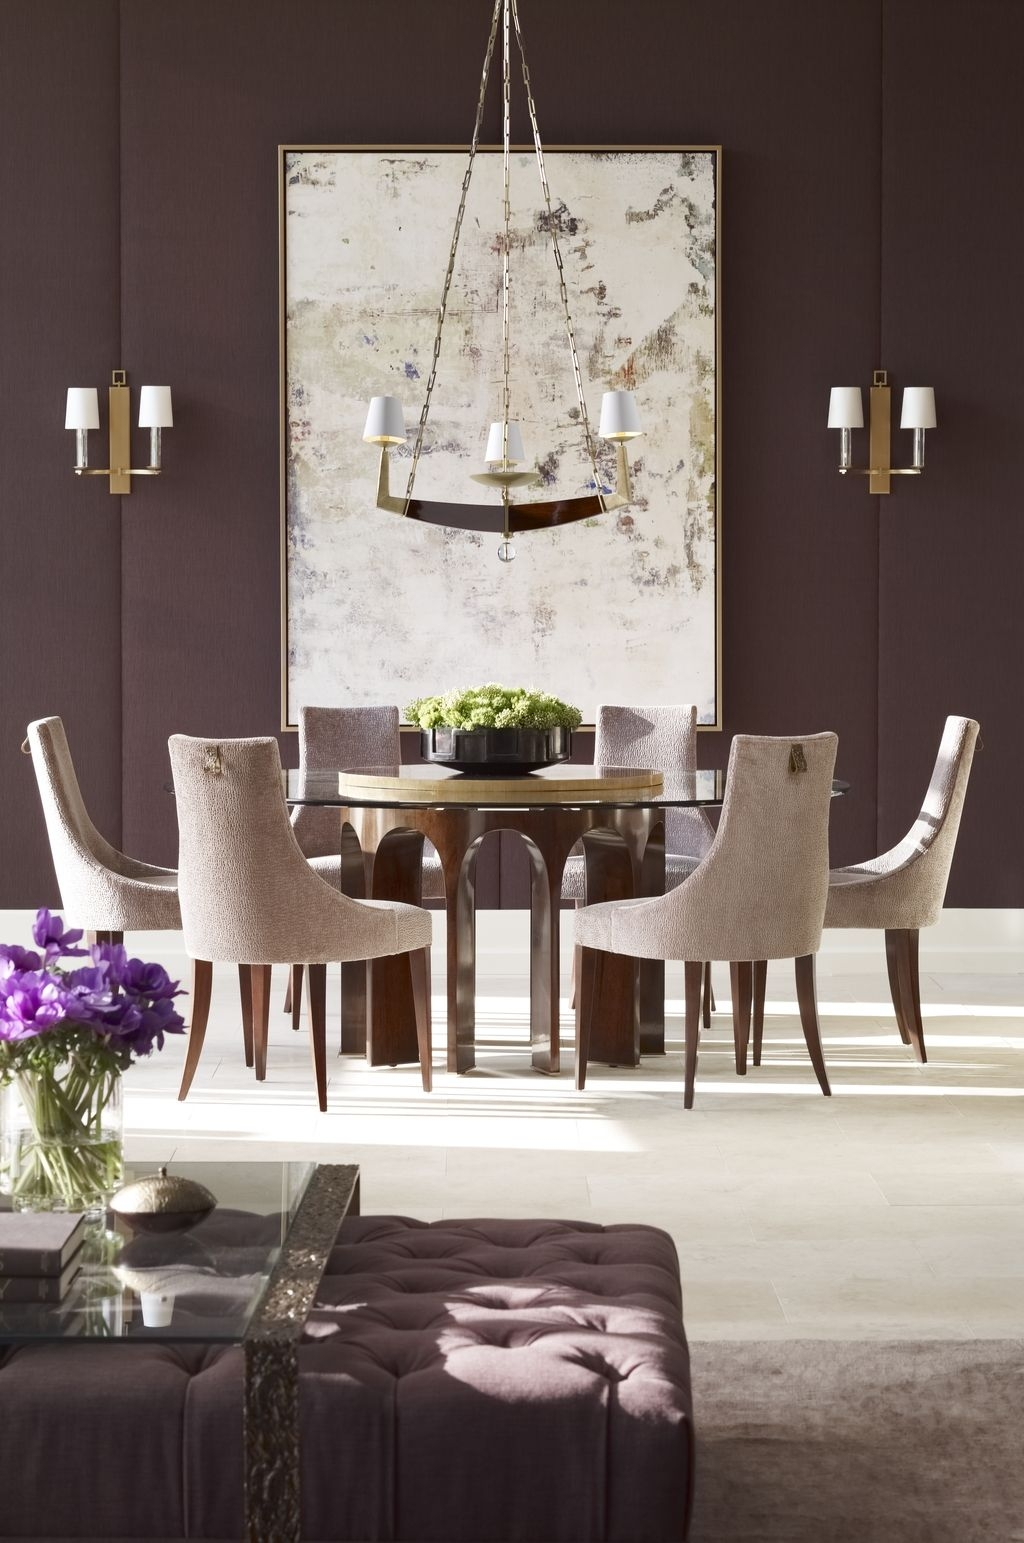 dining room dressed in amethyst with designer table chairs